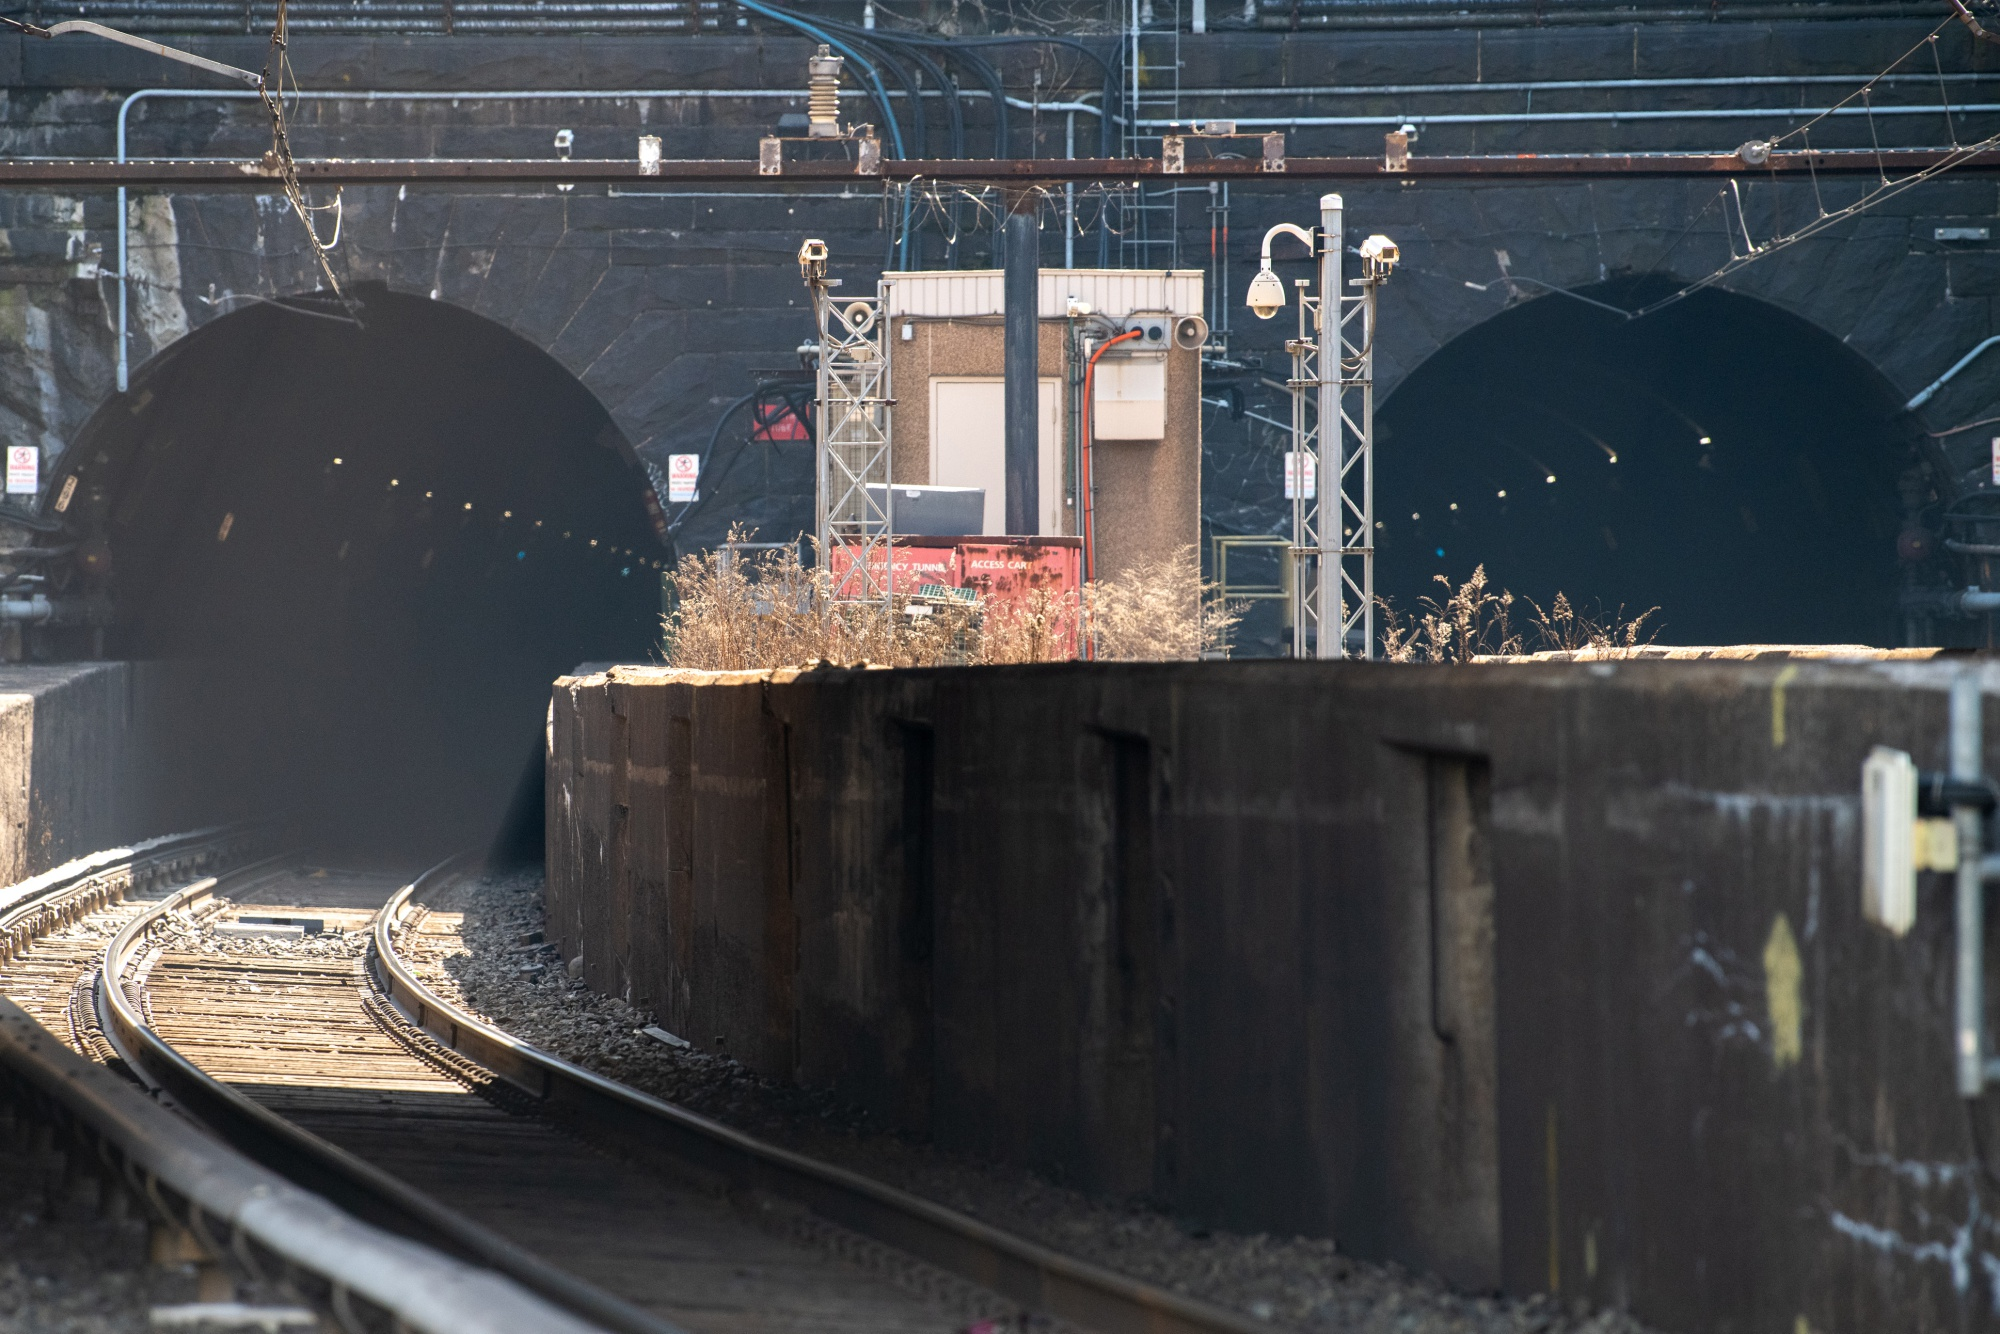 Commuter Trains As Hudson Tunnel Is Being Held Captive By Trump Without Plan B